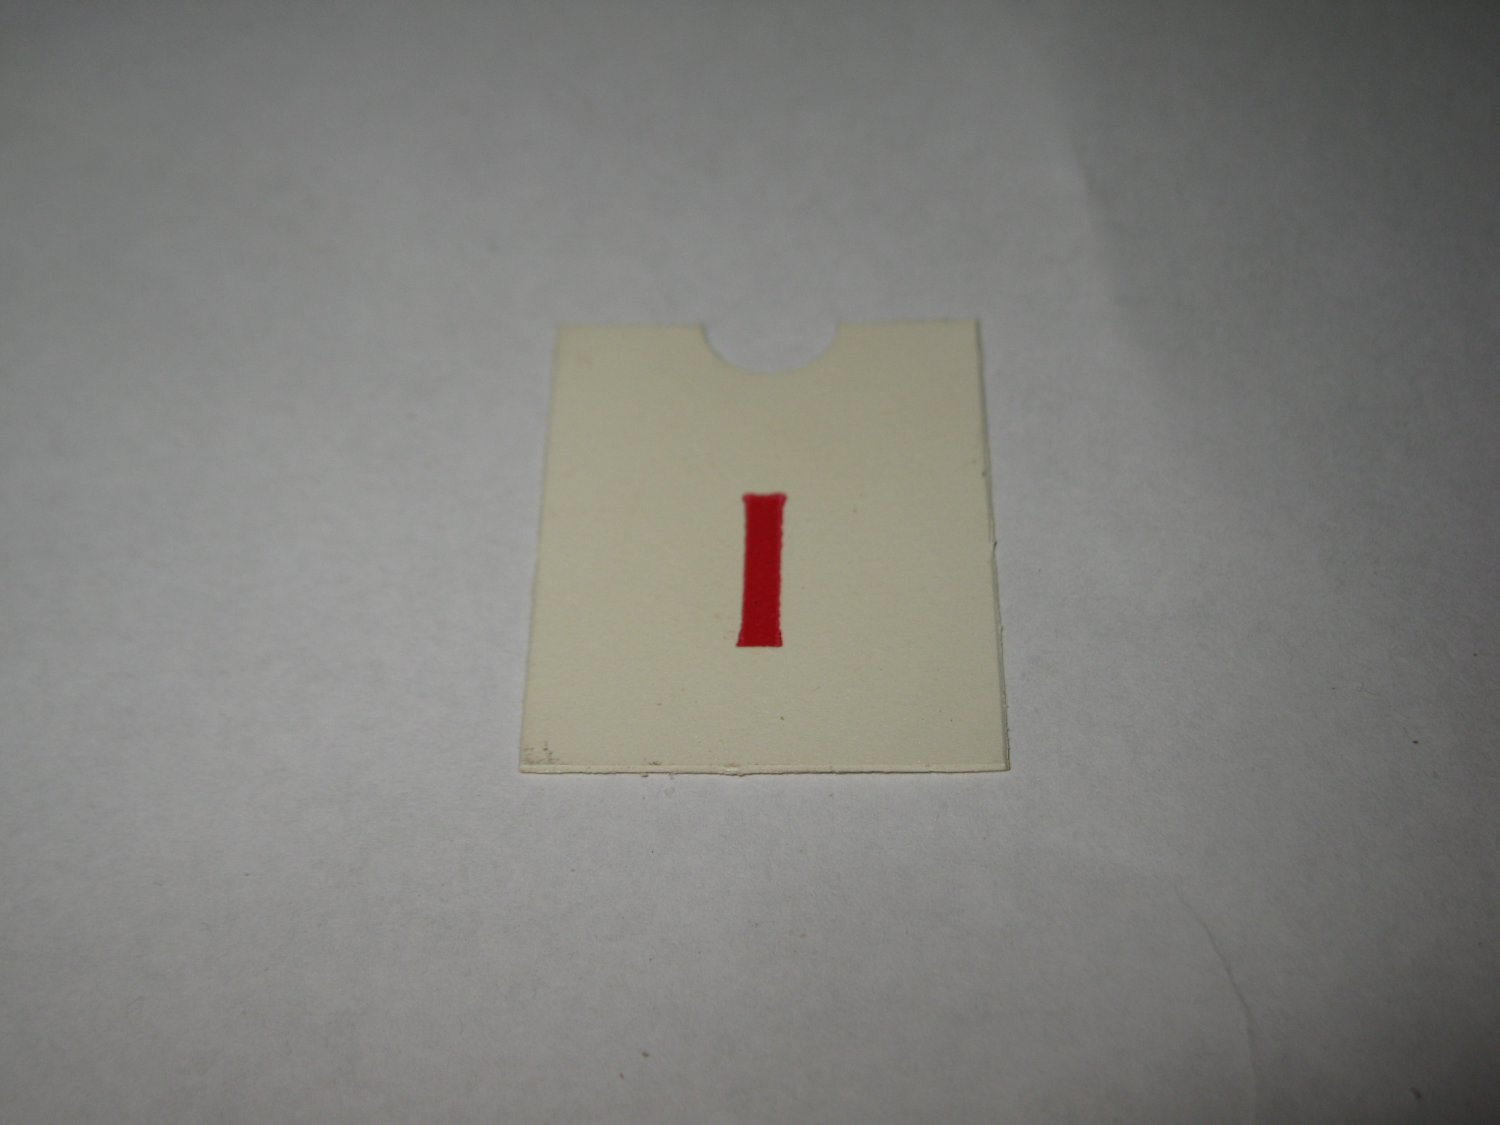 1967 4CYTE Board Game Piece: Red Letter Tab - I